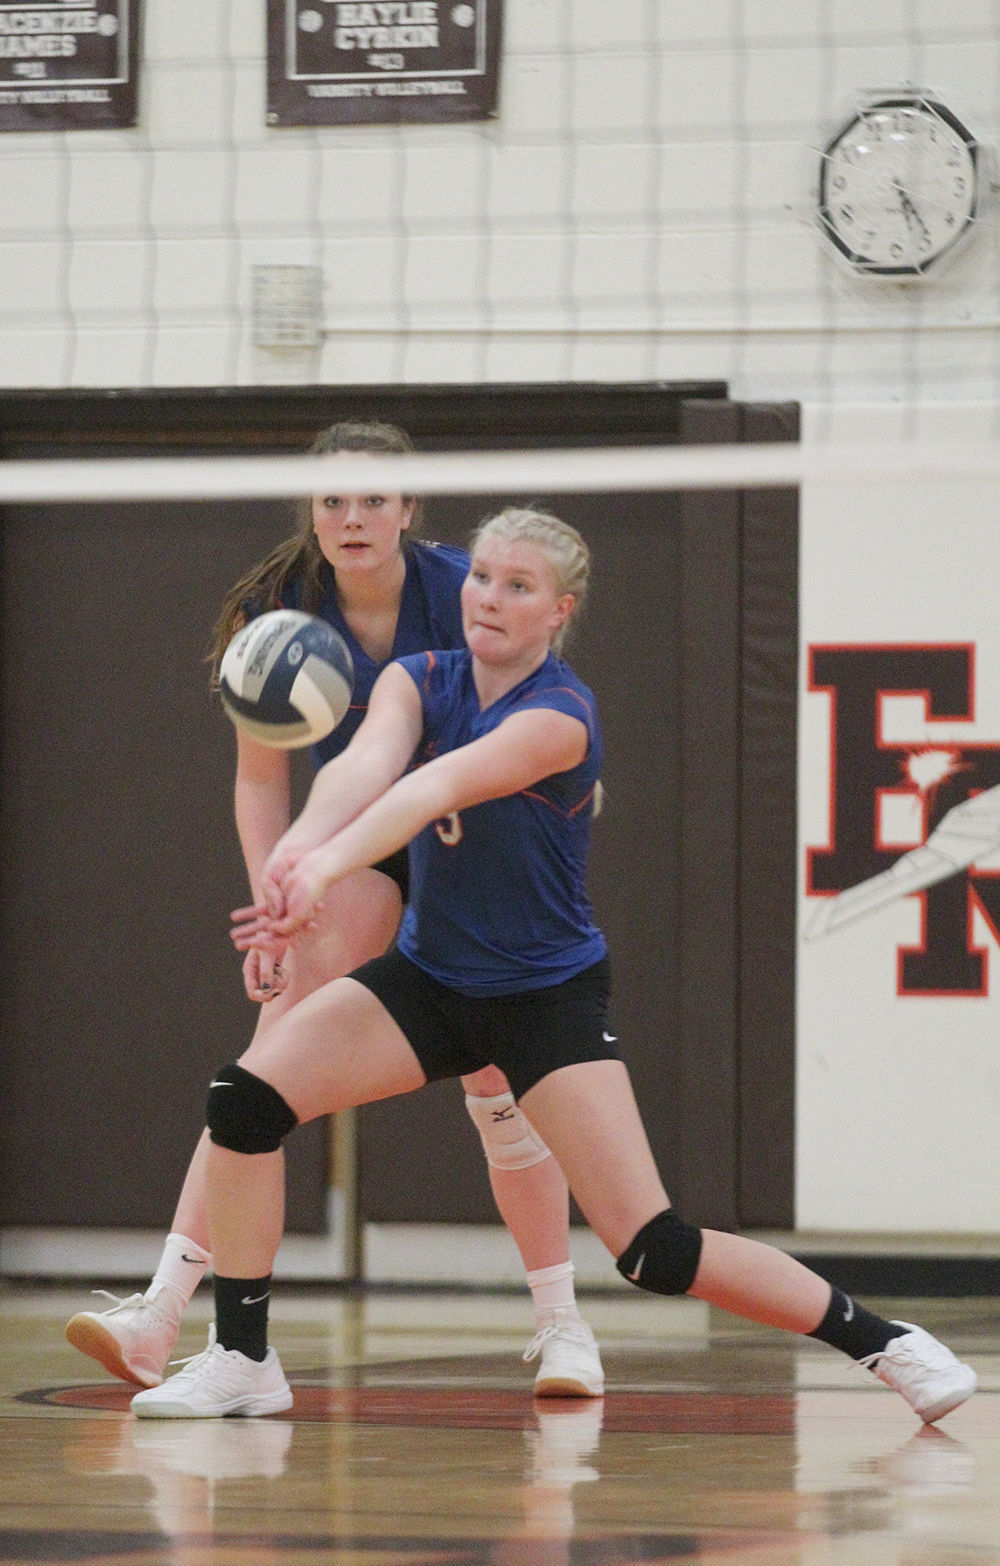 Penn Yan vs. NR-W girls volleyball